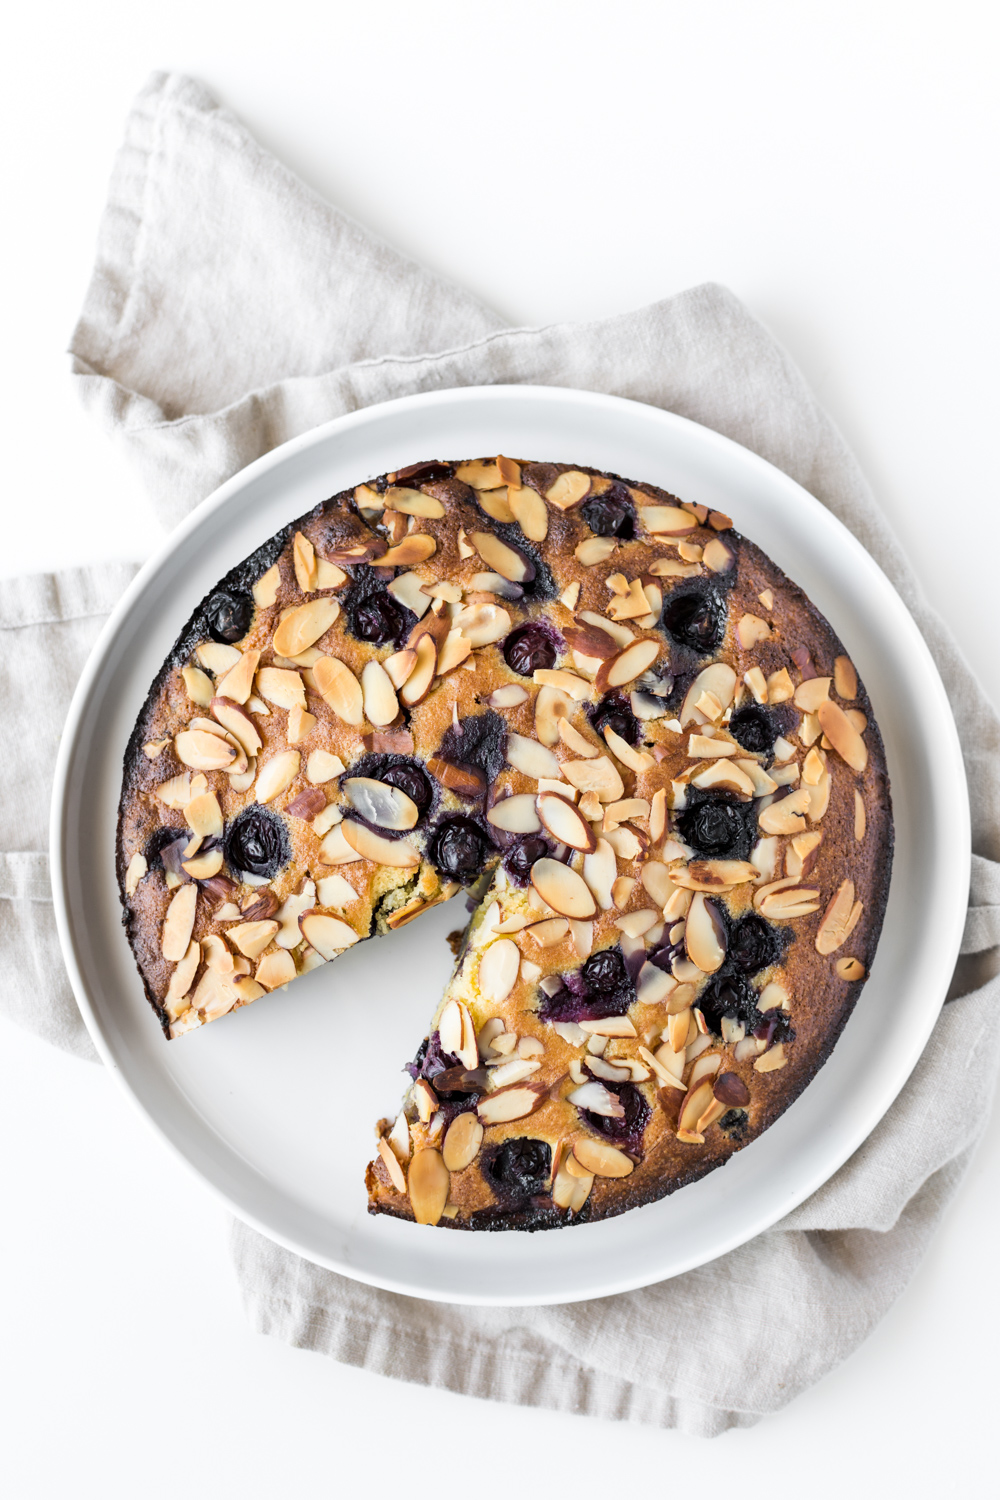 coconut almond blueberry cake7.jpg